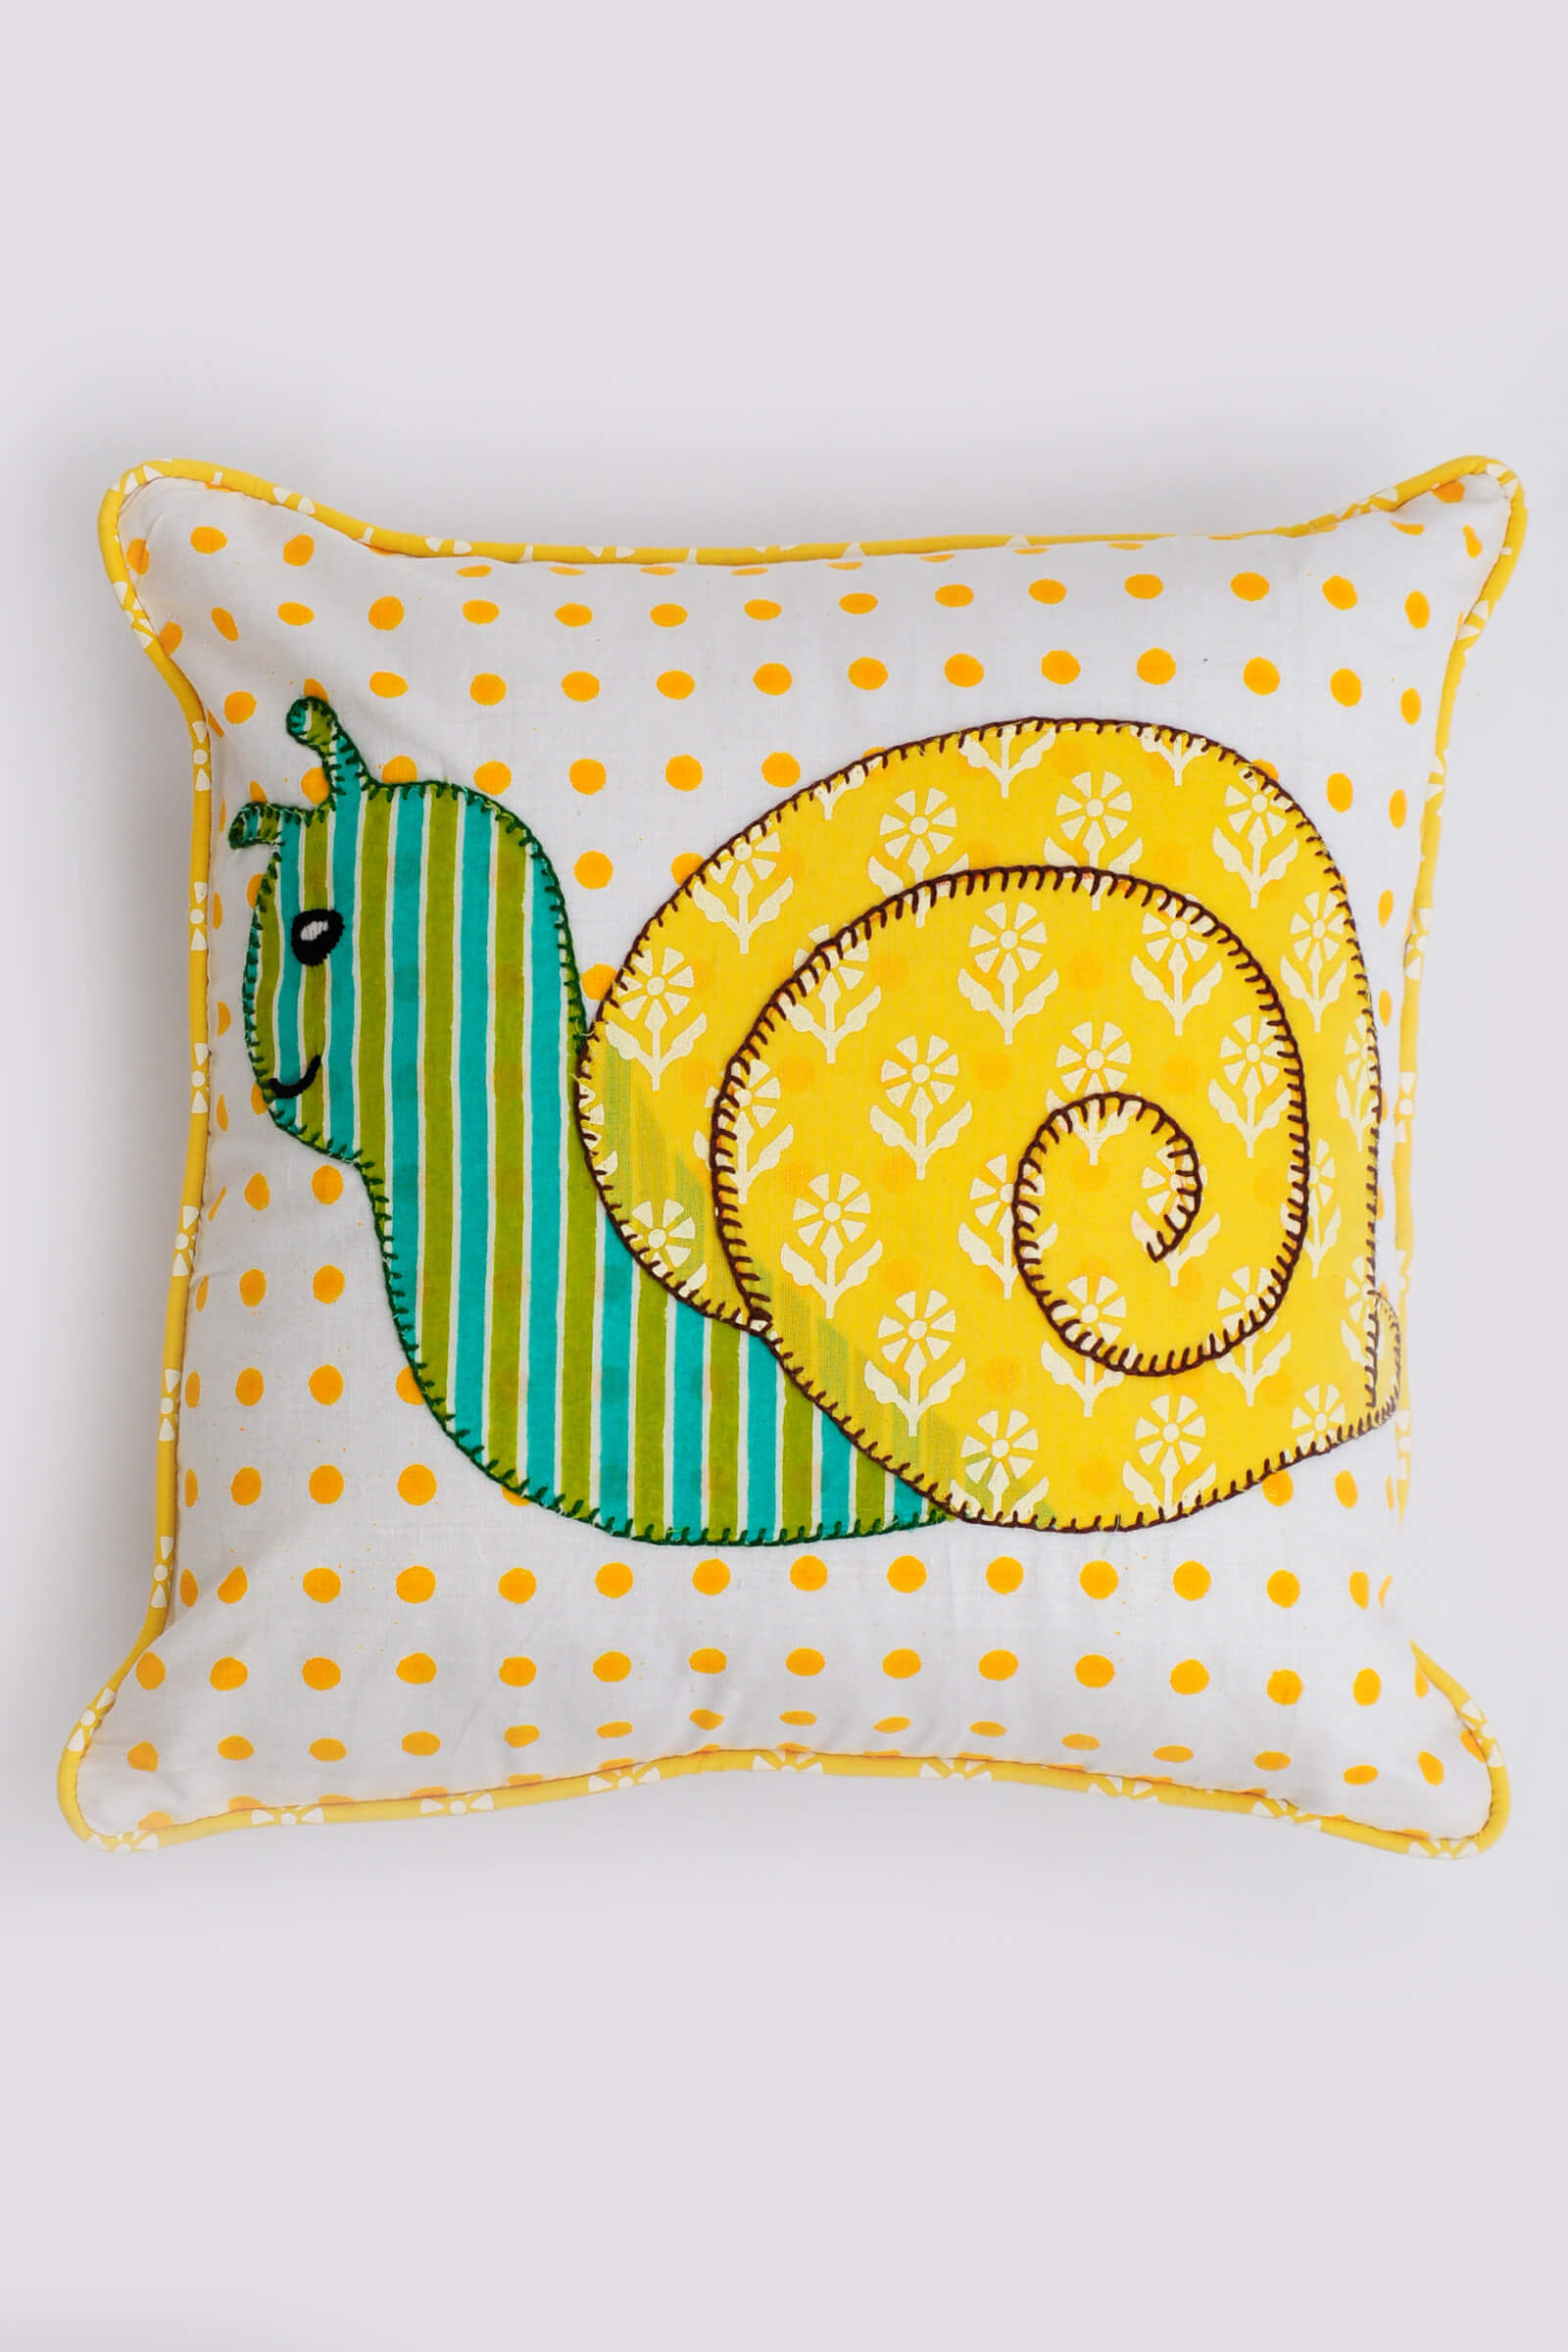 Snail Baby Cushion Cover